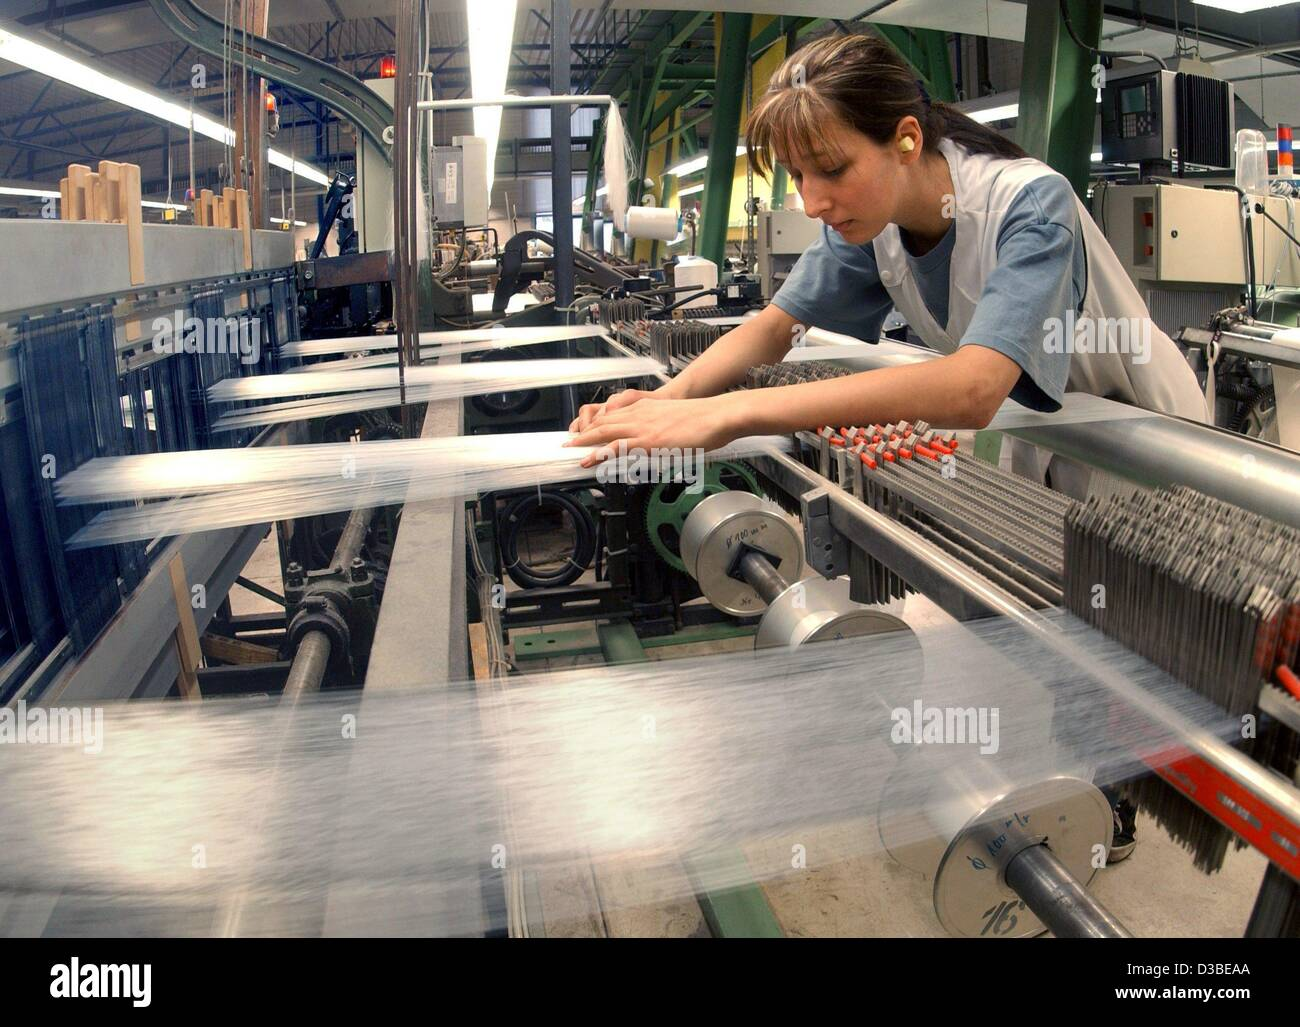 (dpa) - A worker oversees the production of cloth made from natural silk at the Plauener Spinnhuette GmbH (Plauener - Stock Image